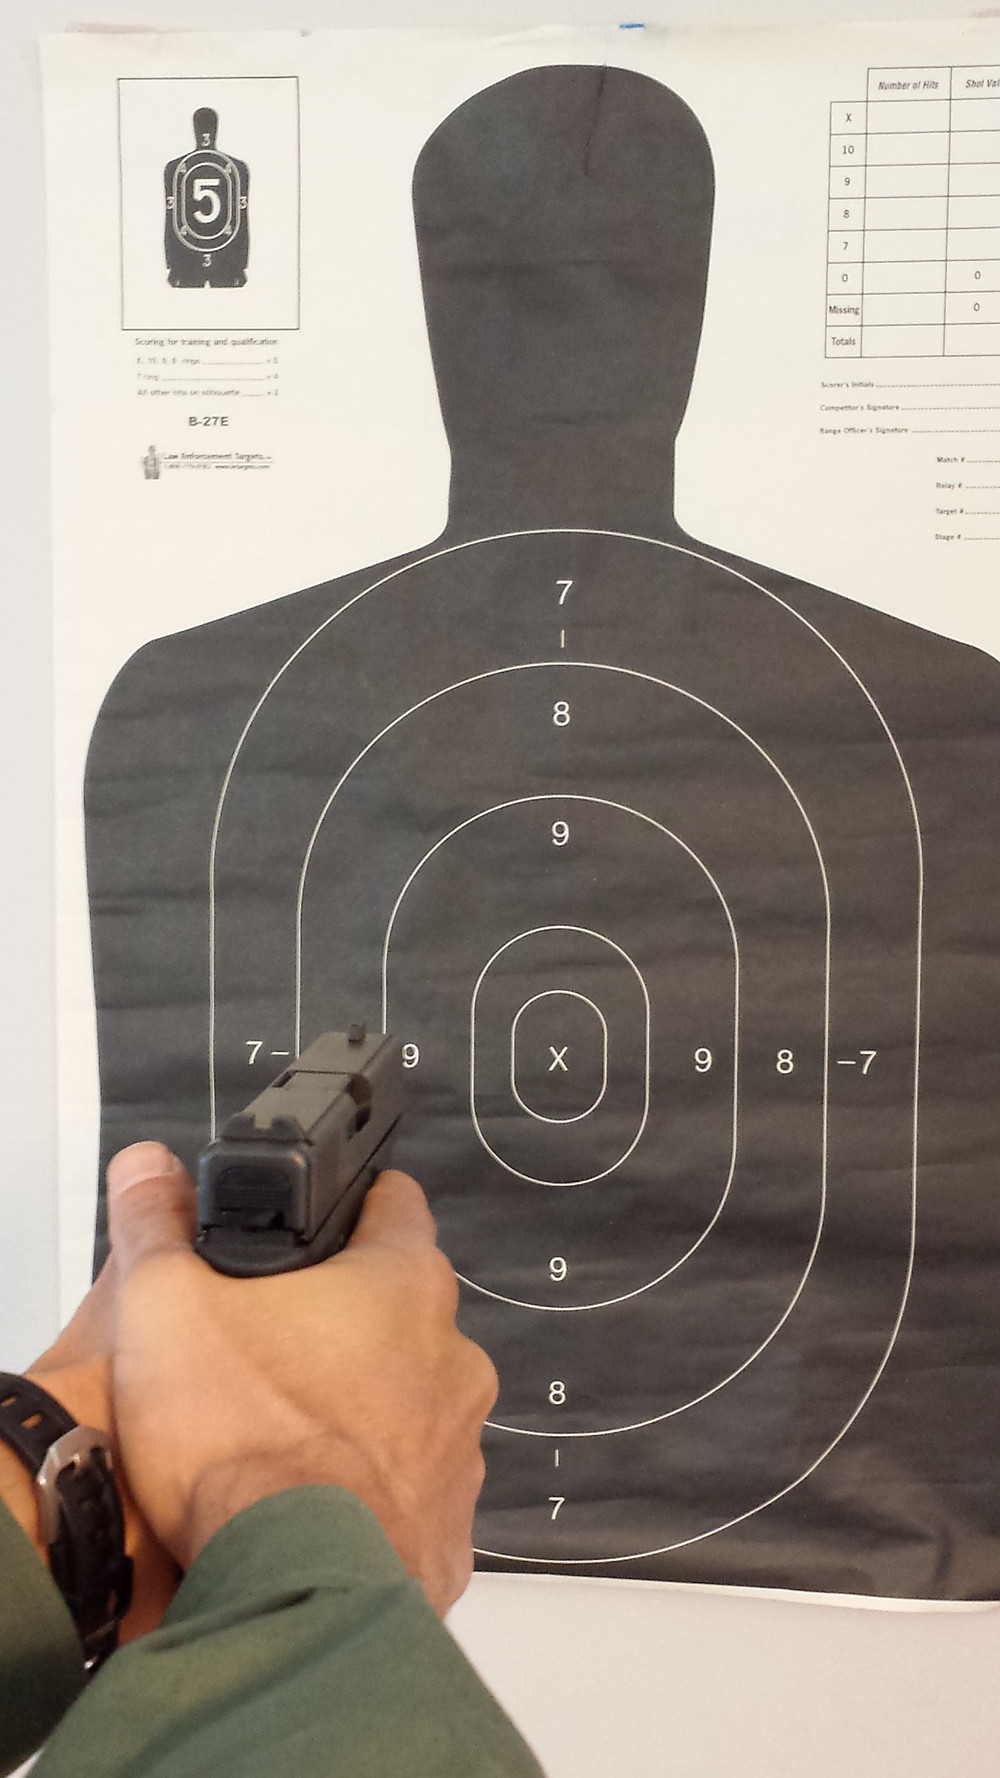 Target and proper pistol grip and alignment